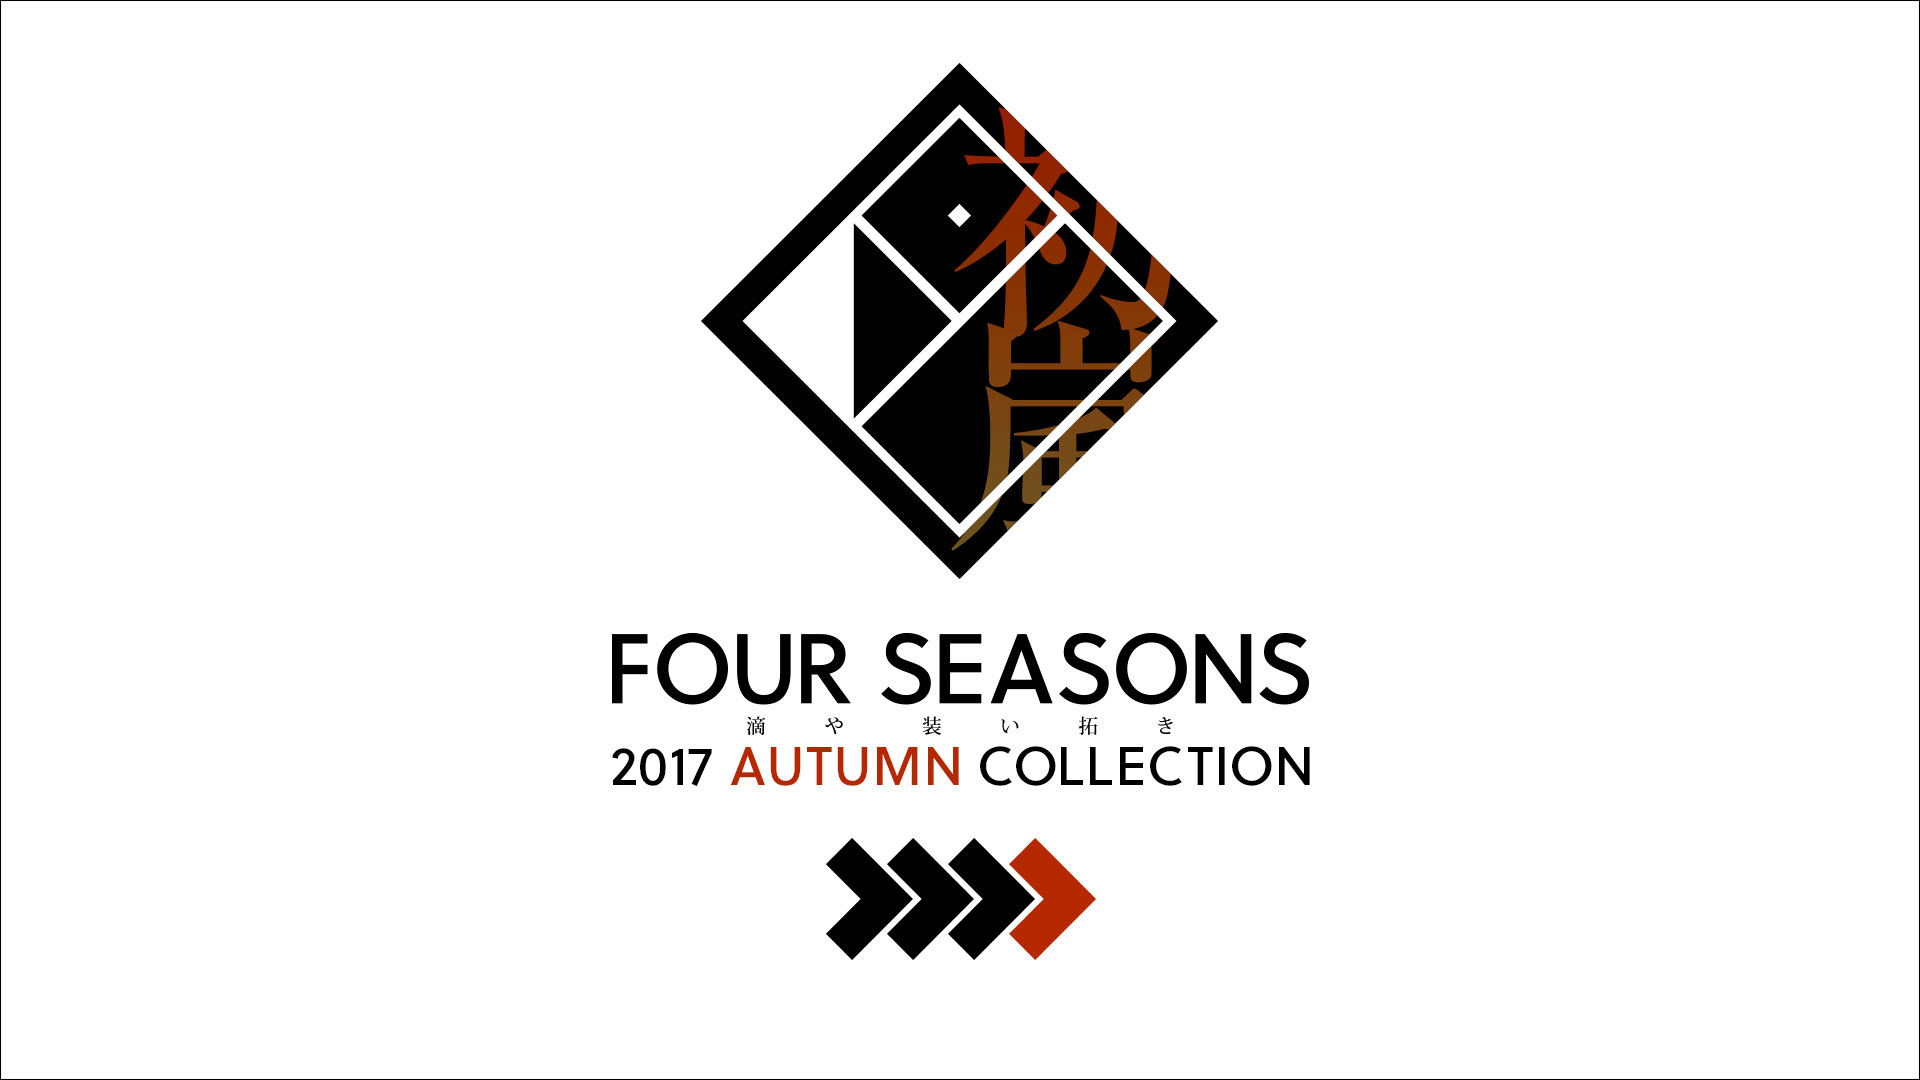 [PHOTO:FOUR SEASONS 2017 AUTUMN COLLECTION]